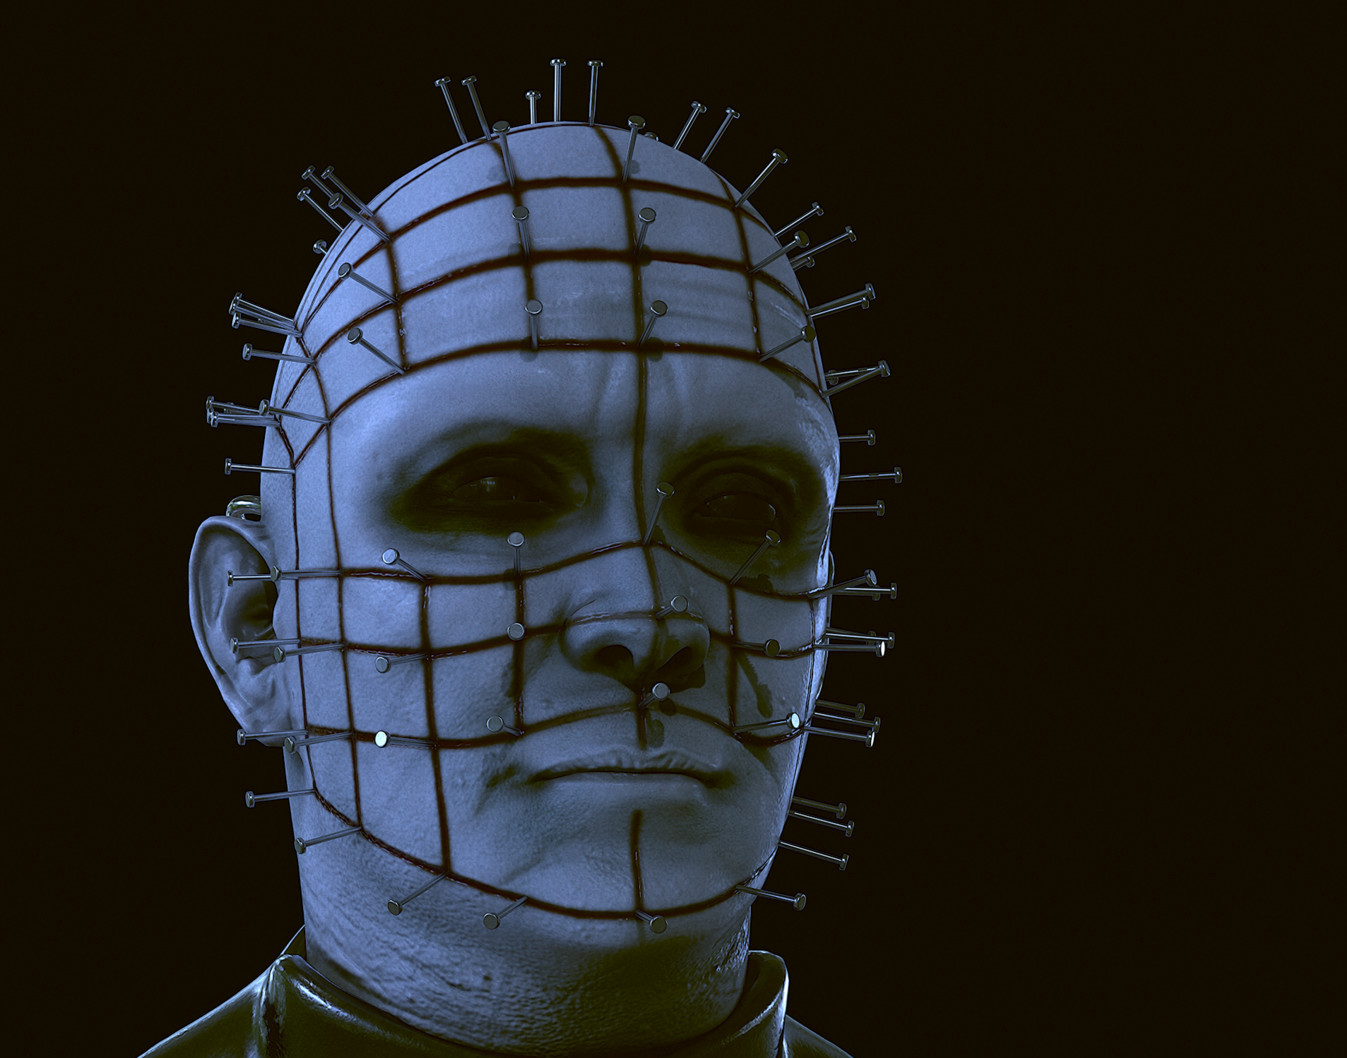 Pinhead (Hellraiser) - Fanart realtime model